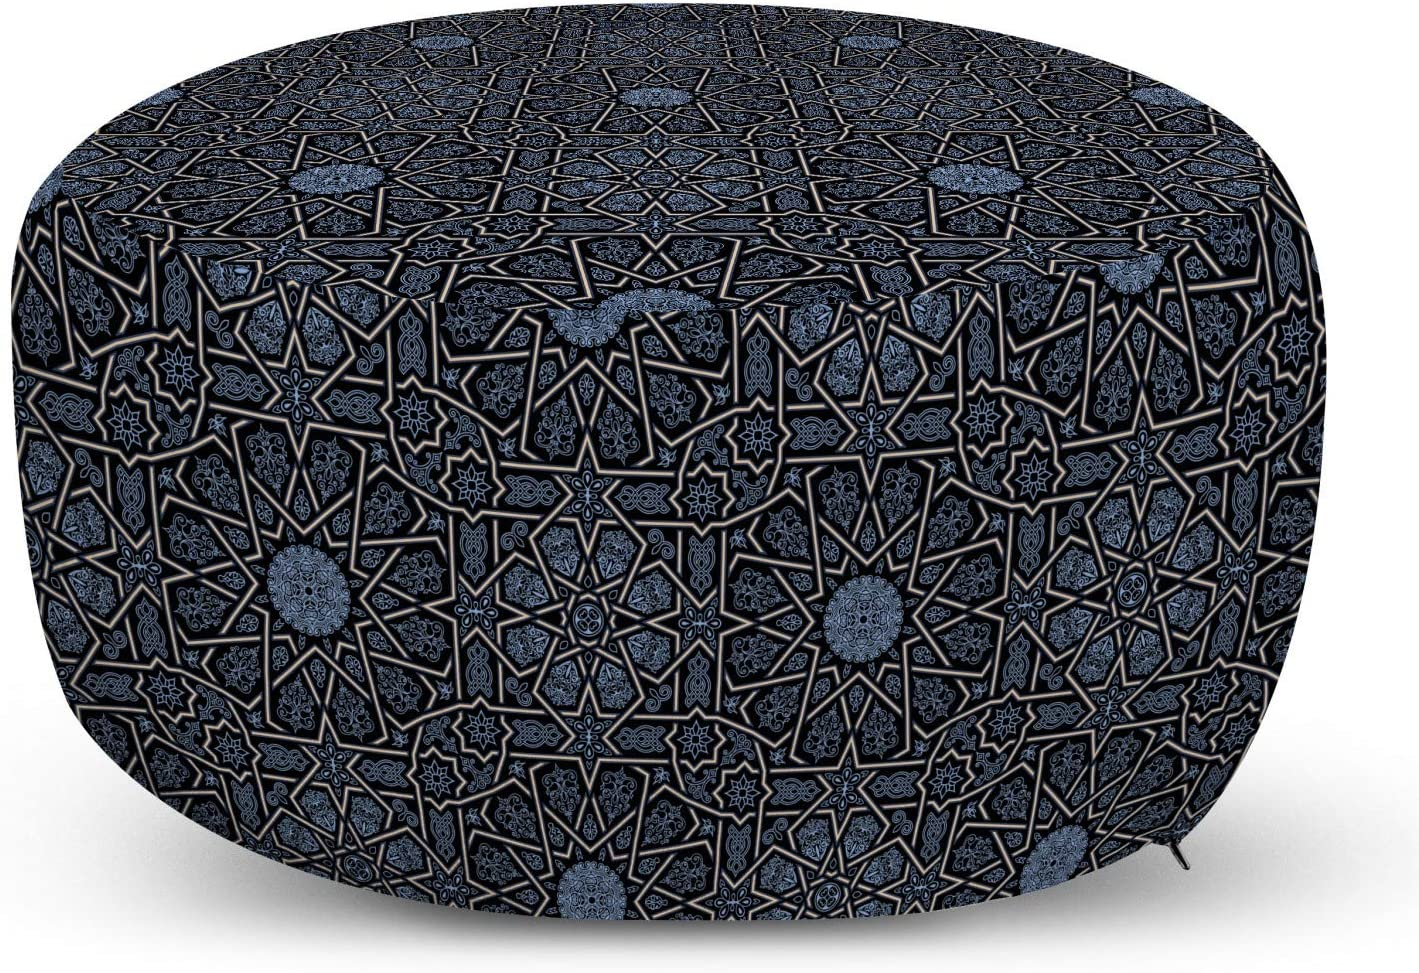 Ambesonne Moroccan Ottoman Pouf, Geometric Design with Old Rich Royal Elements and Moroccan Star Dark, Decorative Soft Foot Rest with Removable Cover Living Room and Bedroom, Black Cream